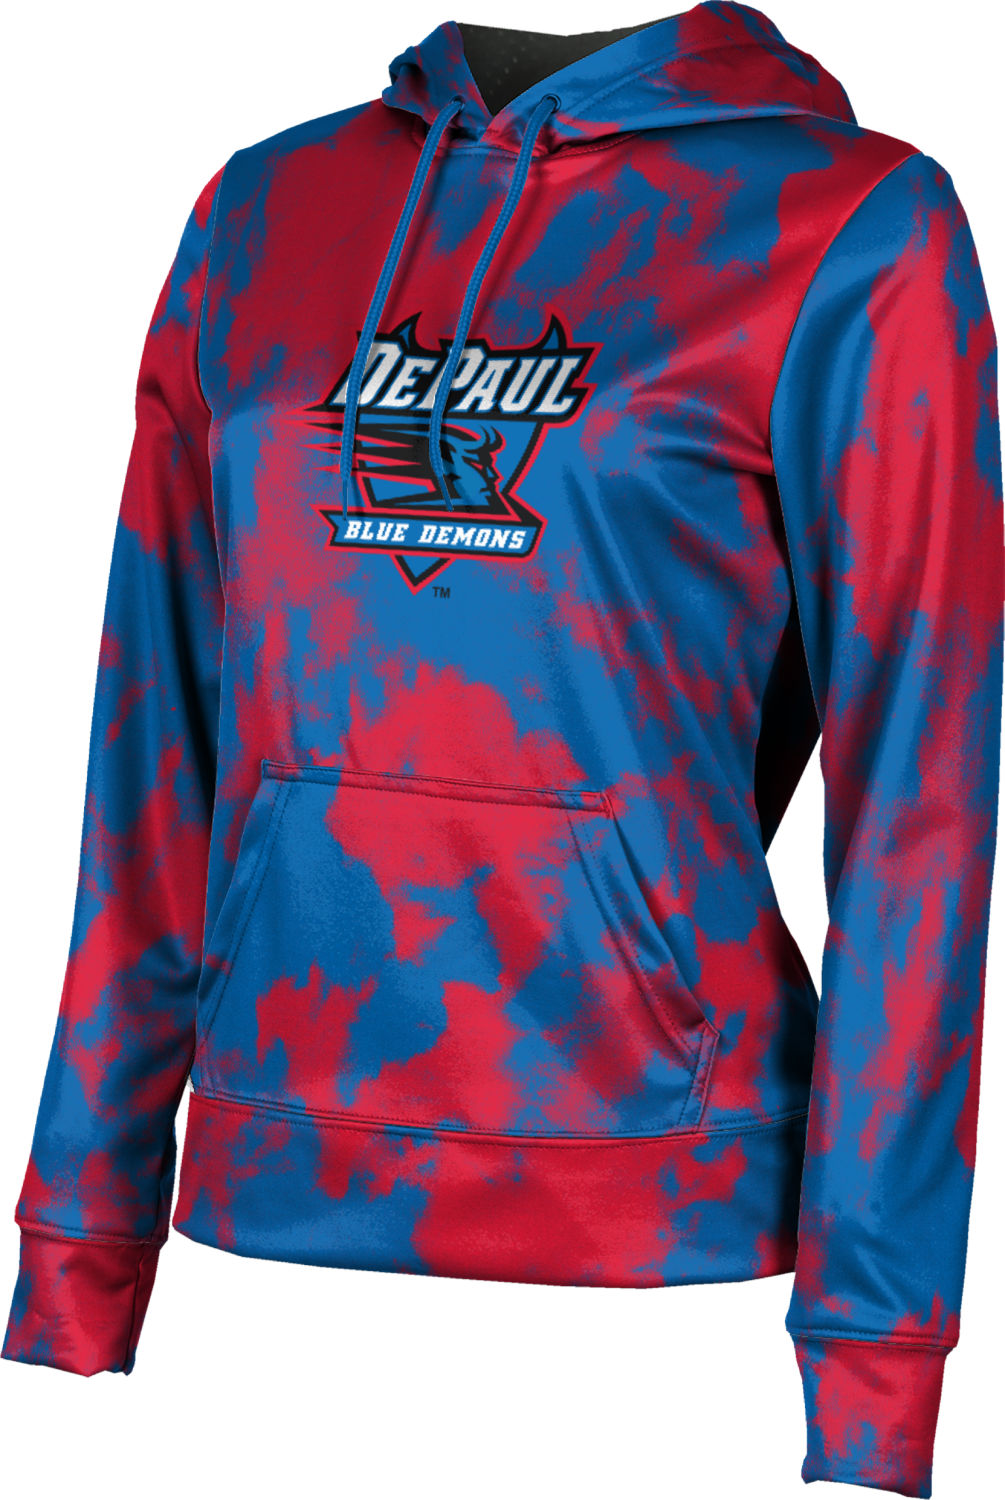 End Zone ProSphere DePaul University Girls Performance T-Shirt